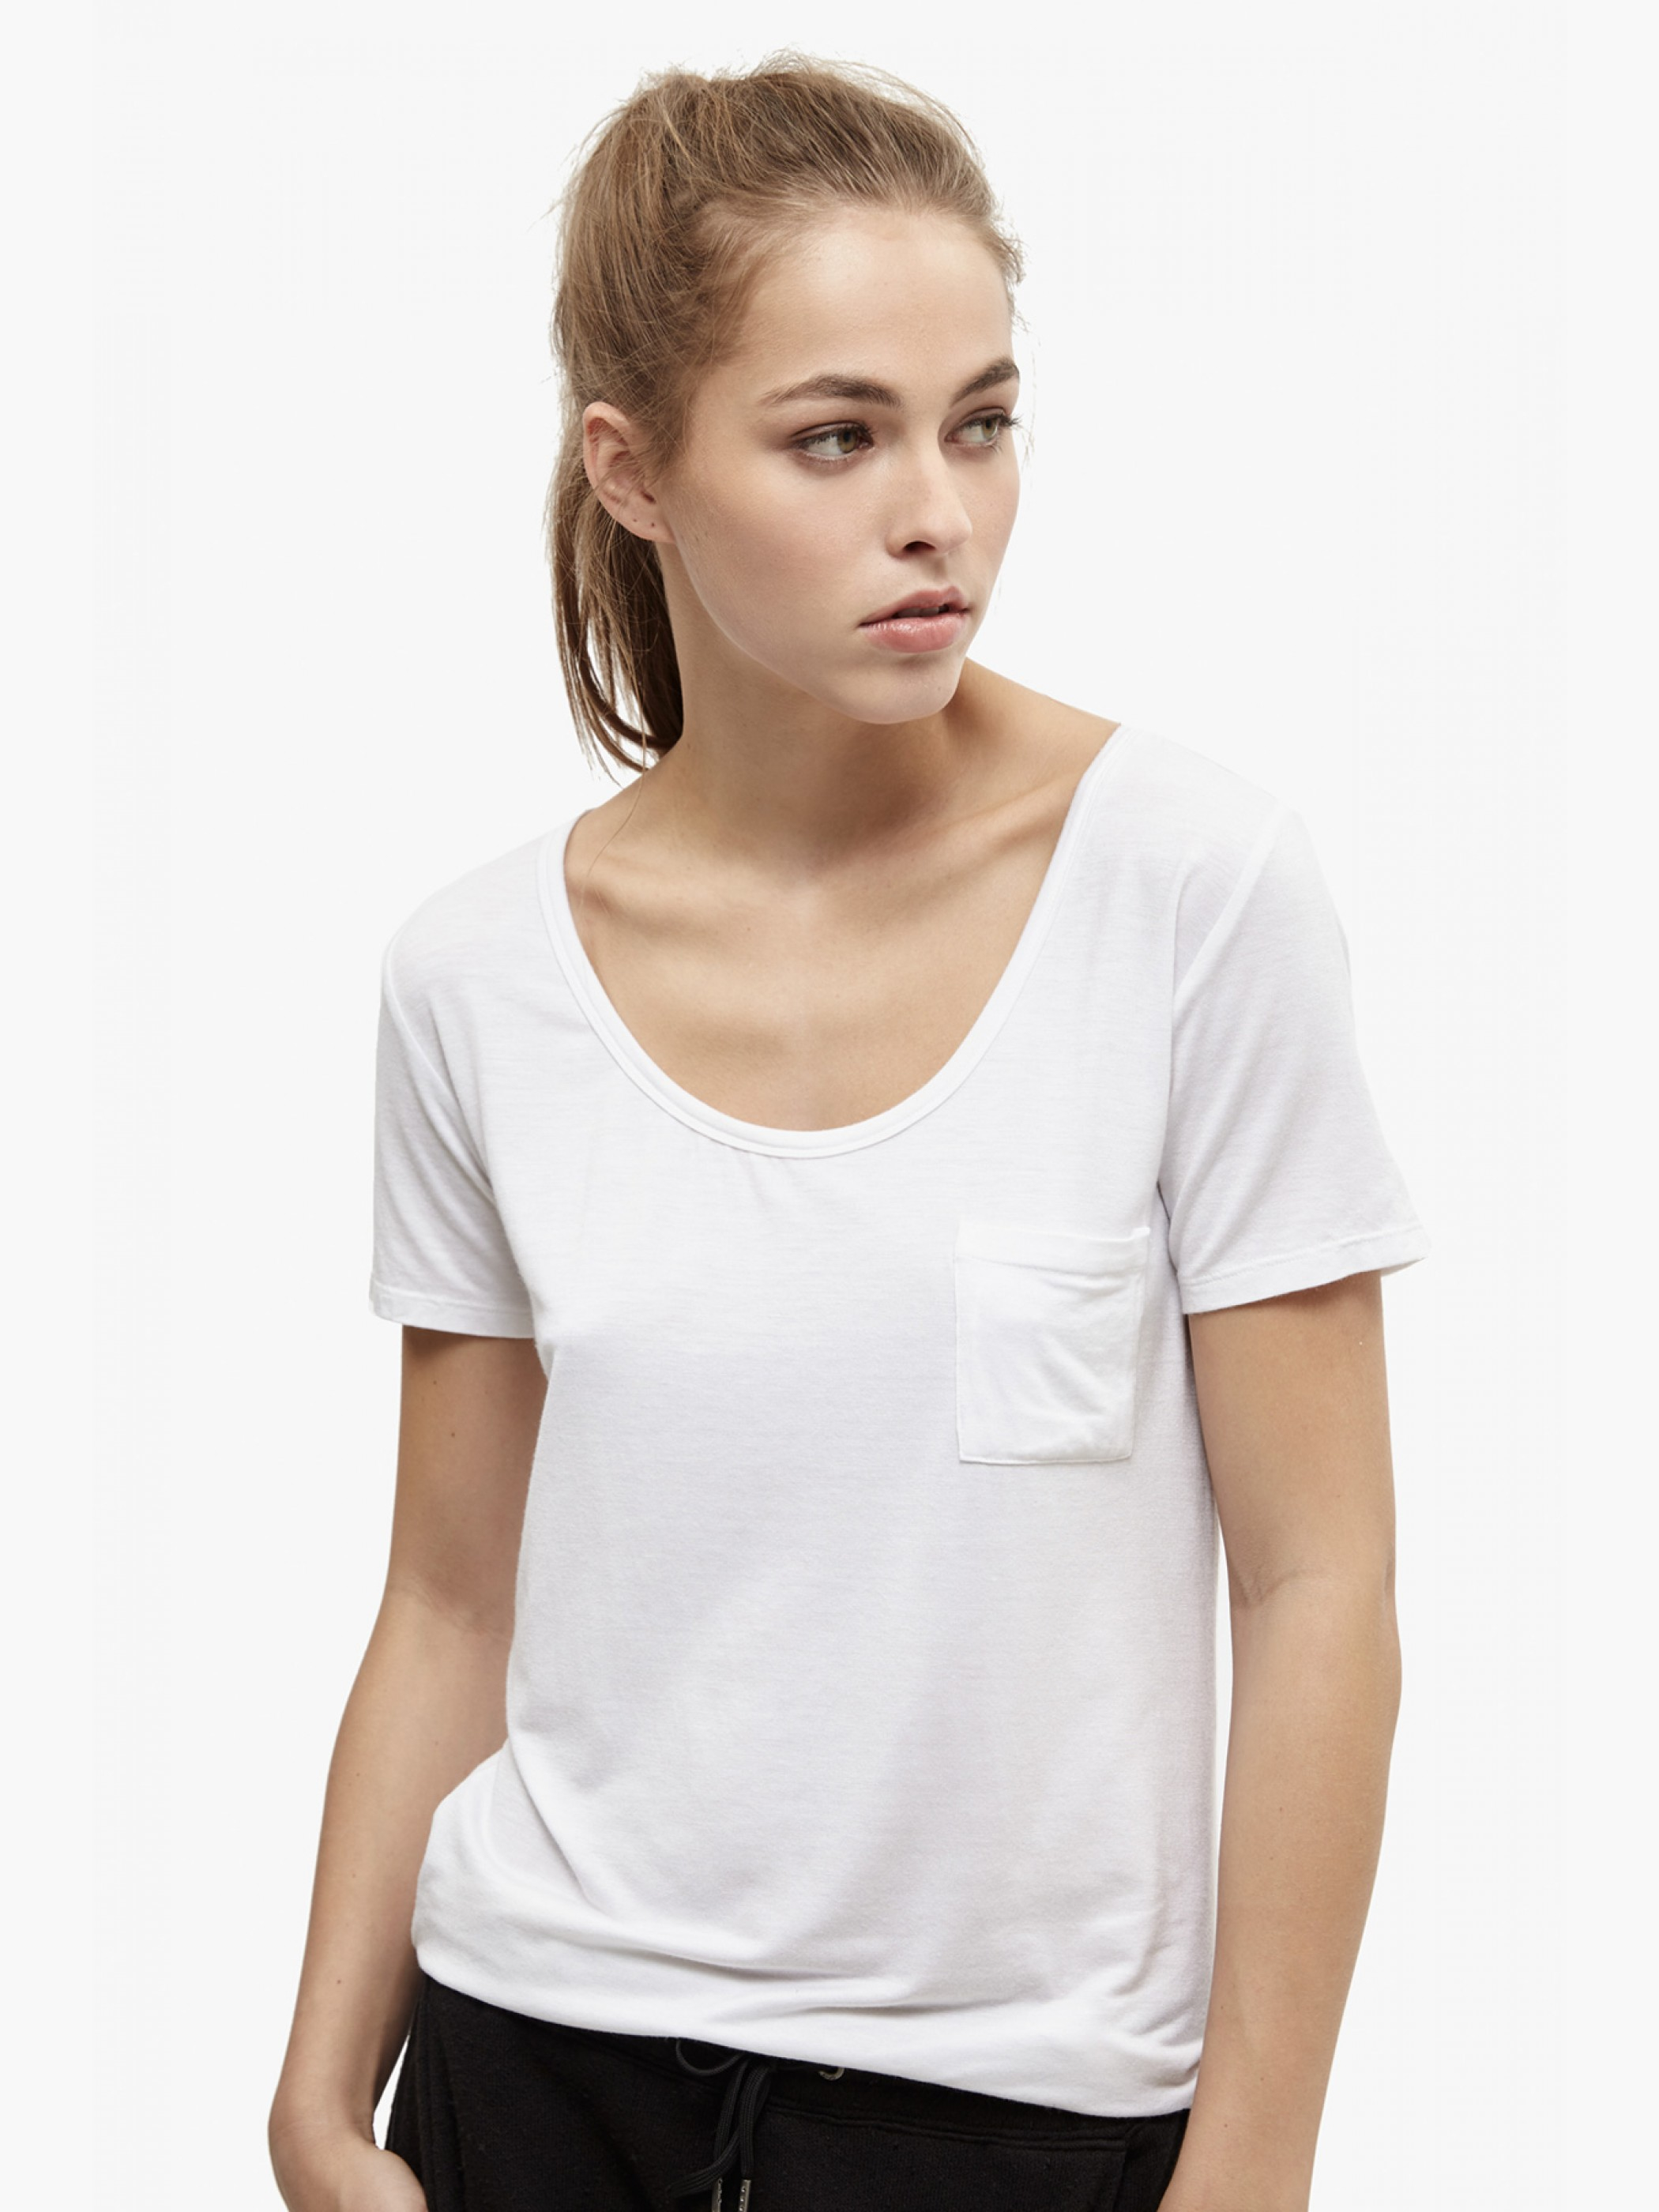 onia women Free shipping designer onia clothing at wwwbarneyswarehousecom shop legendary sales and discounts on past season women's, men's, and children's clothing, shoes, and accessories, plus.